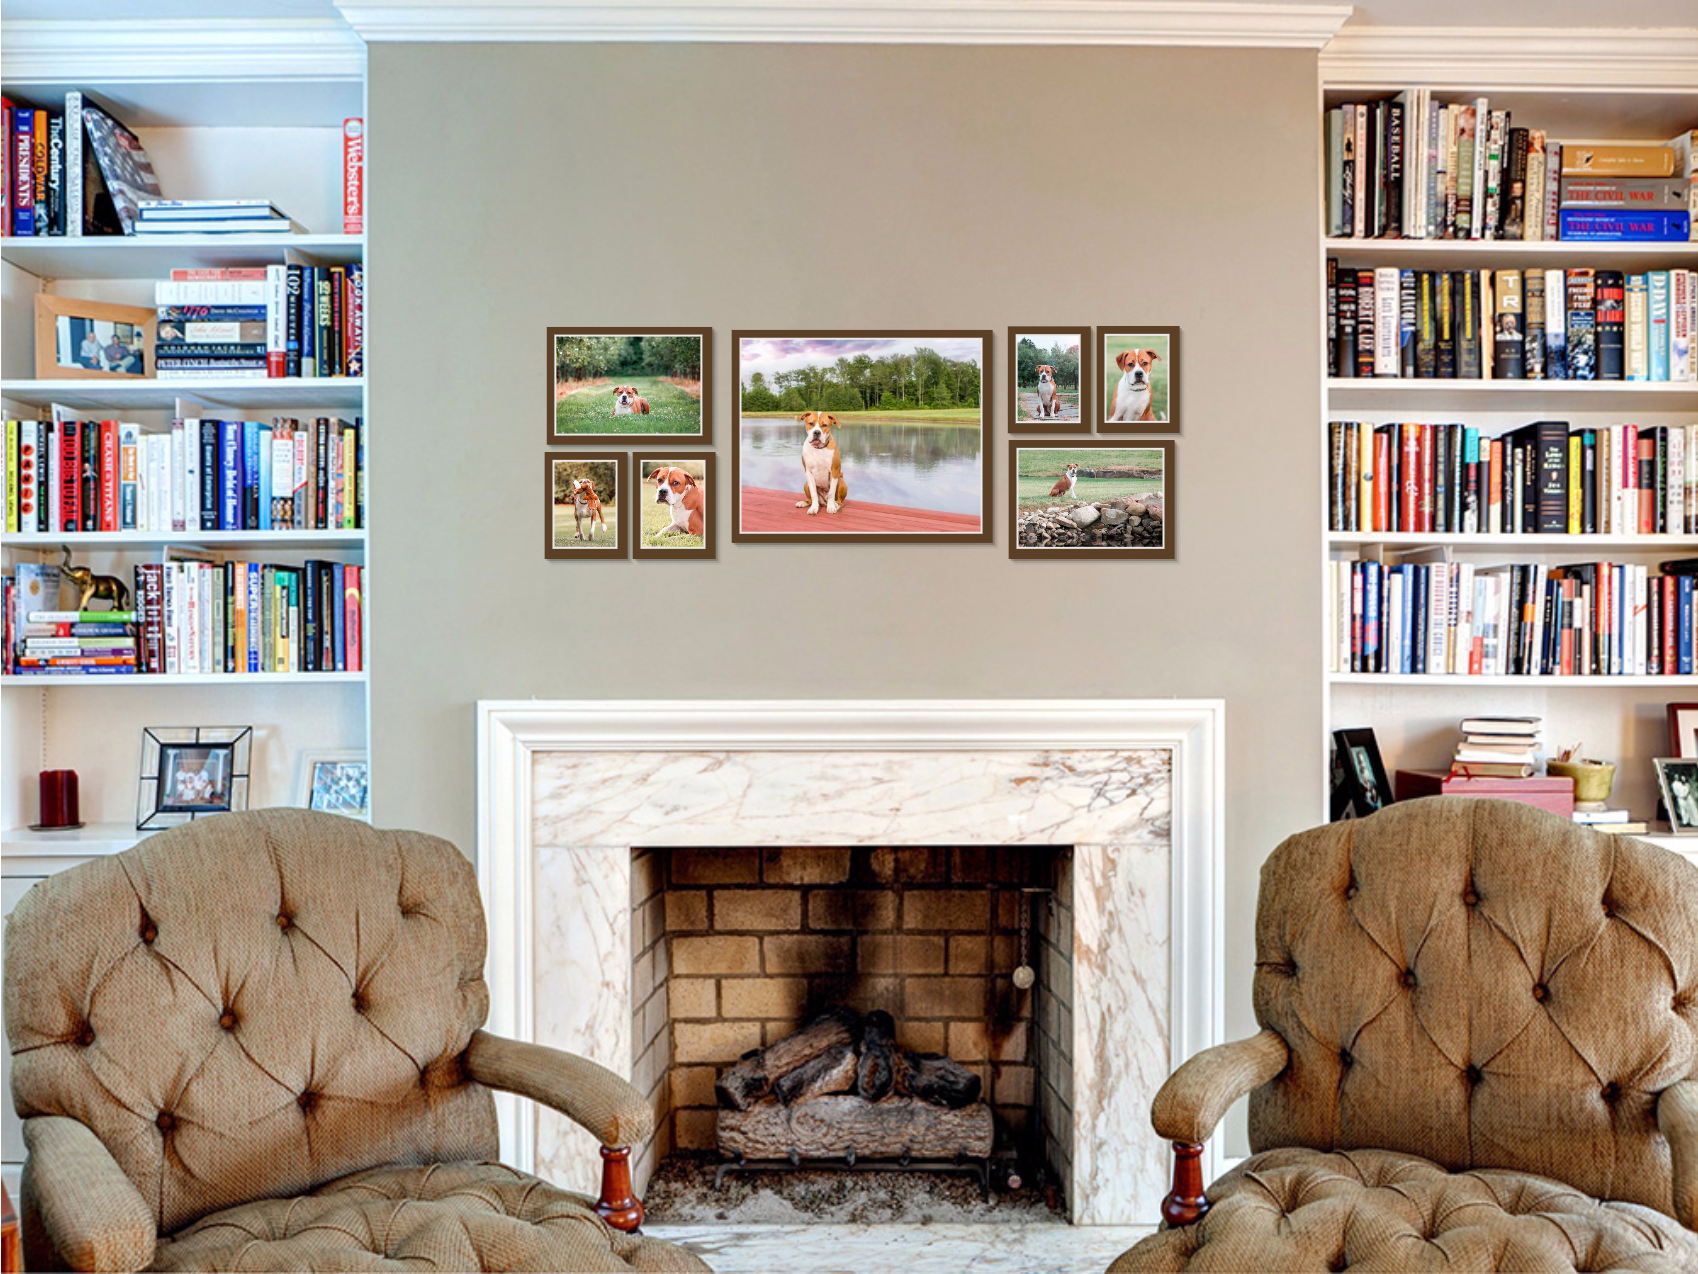 dog photography wall art grouping above fireplace in family room